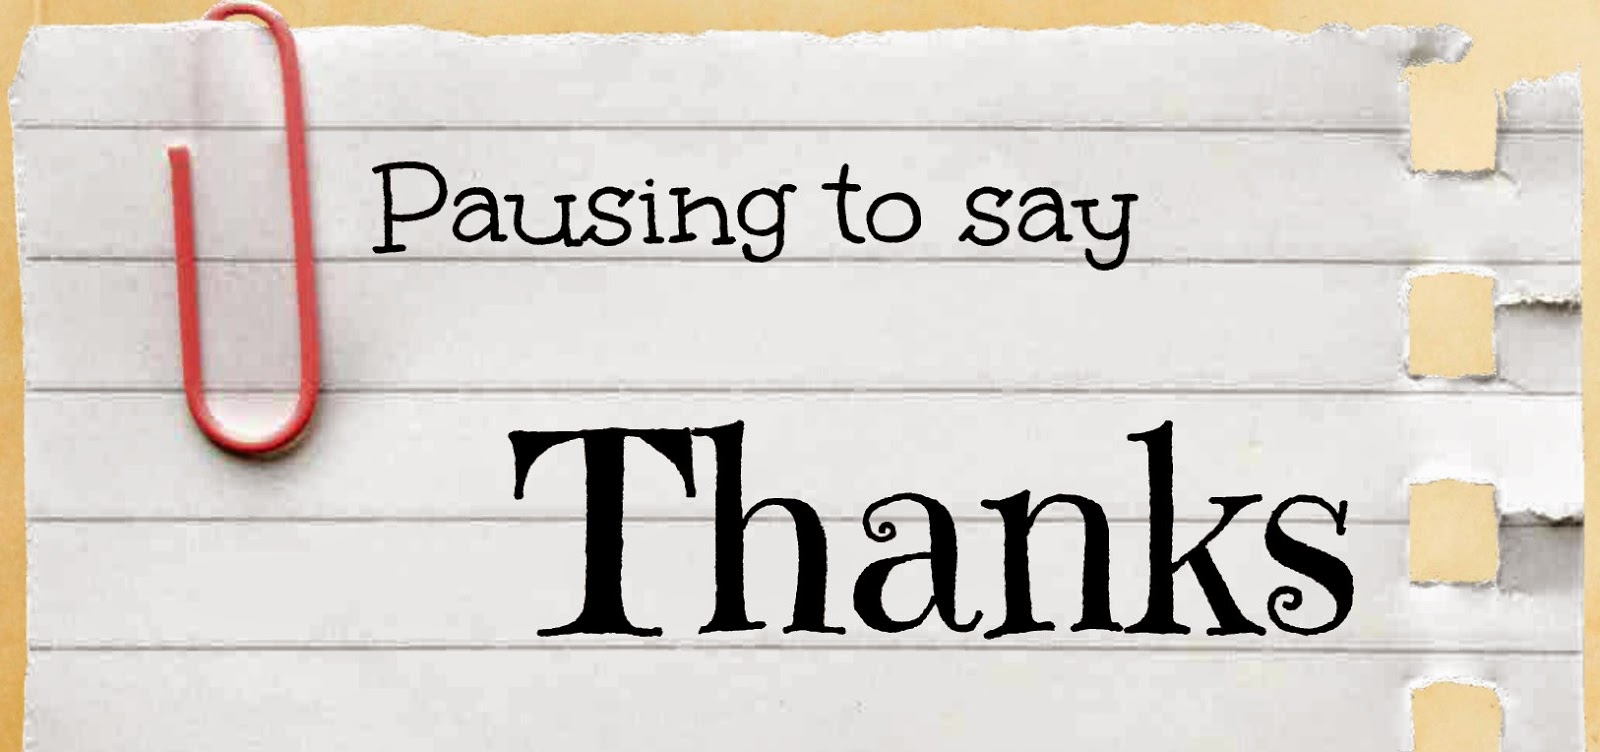 pausing to say thanks